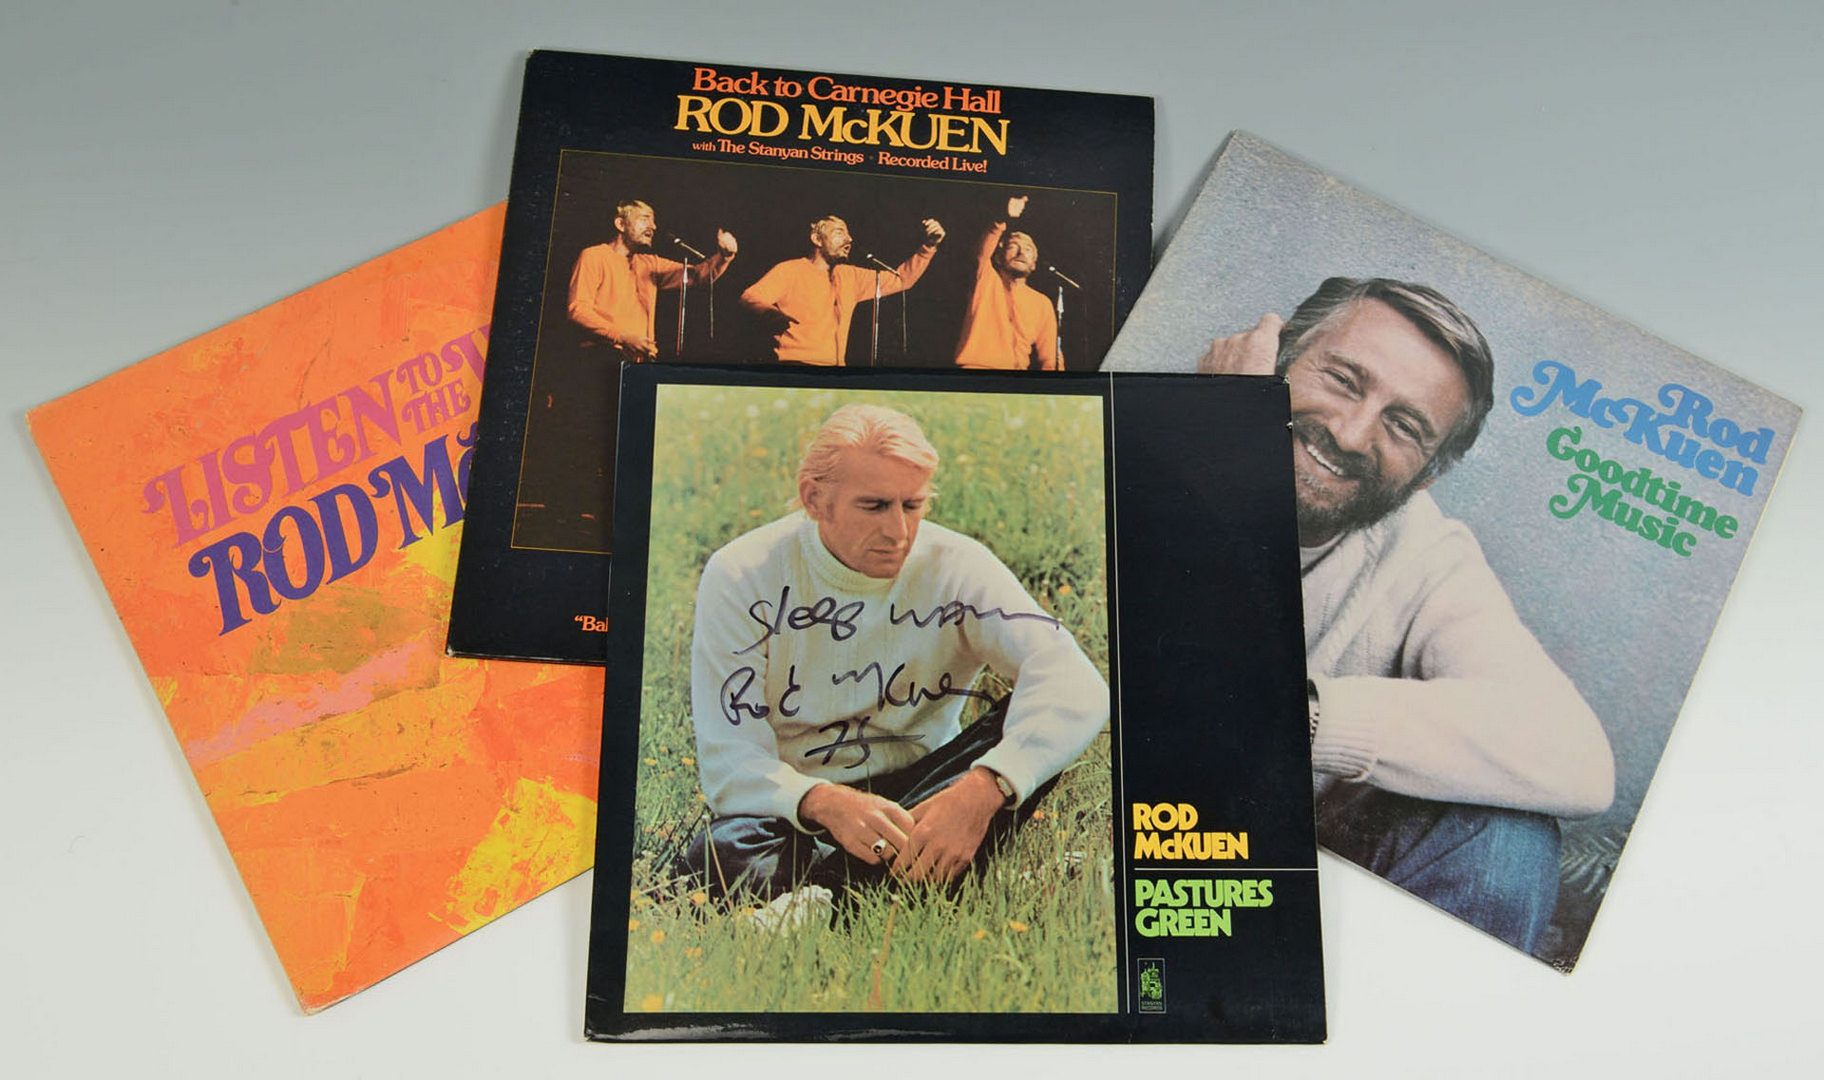 Lot 689: Collection of Rod McKuen albums & first edition bo